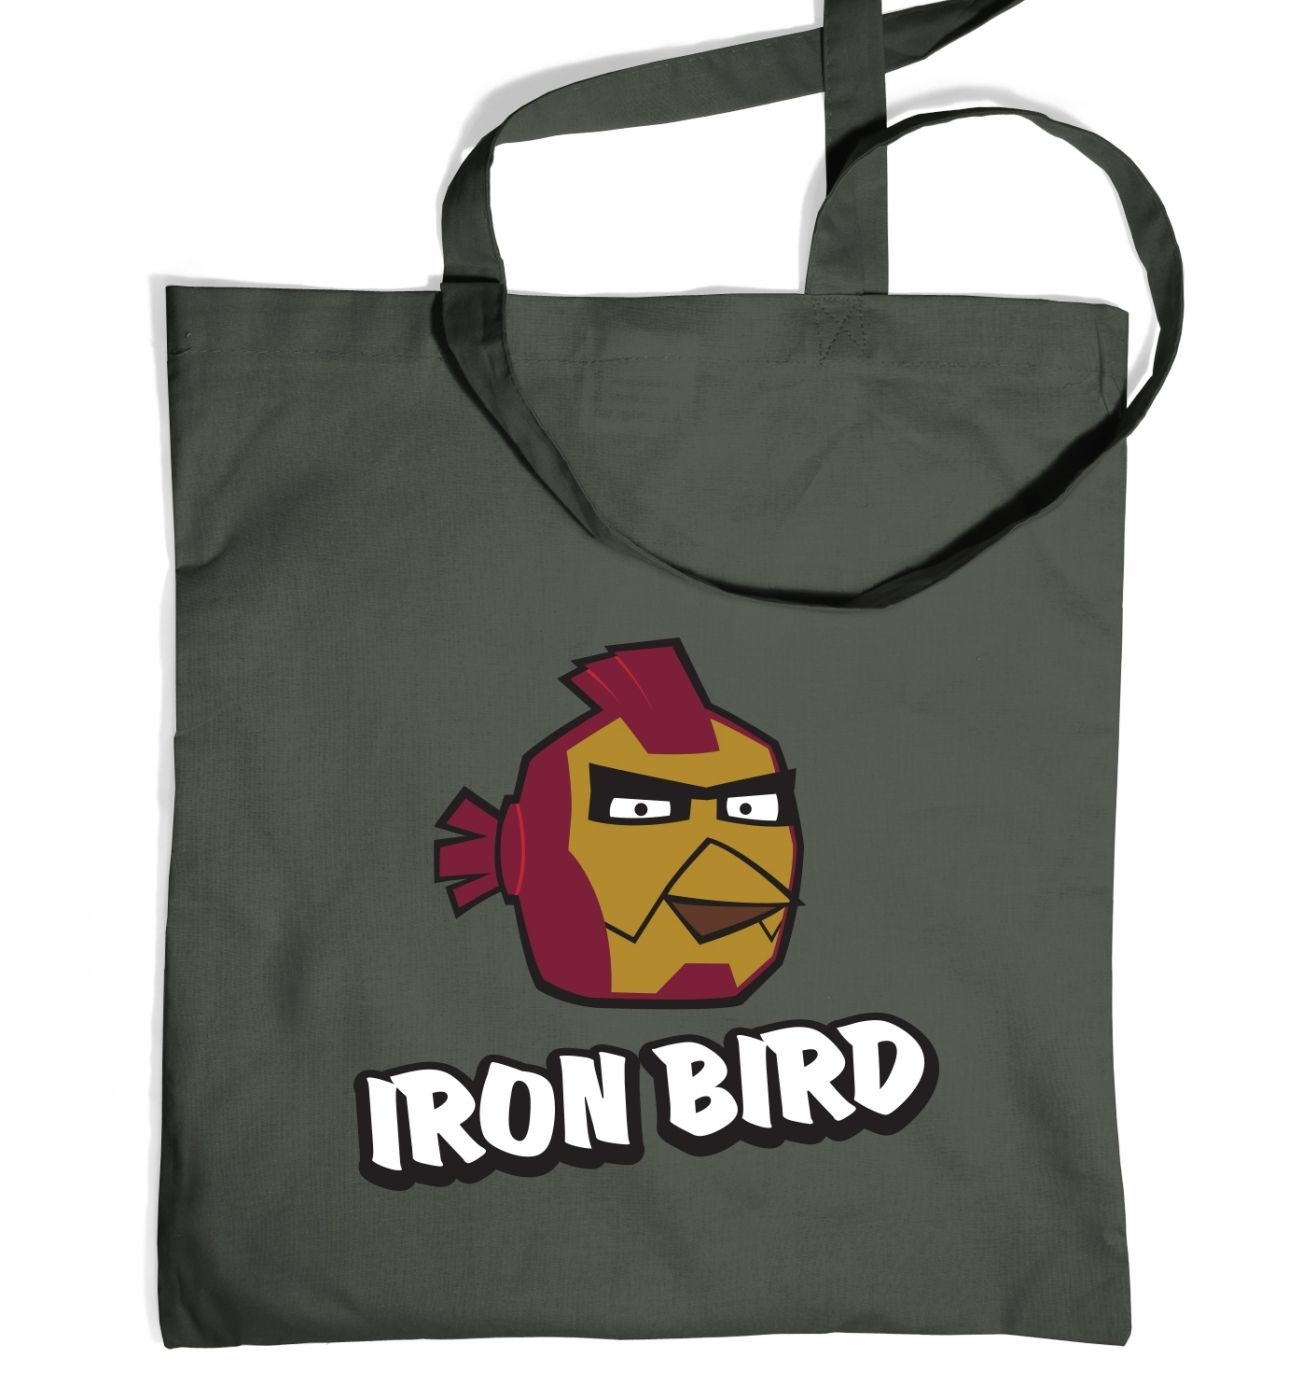 Iron Bird Tote Bag Inspired By Avengers, Angry Birds And Iron Man